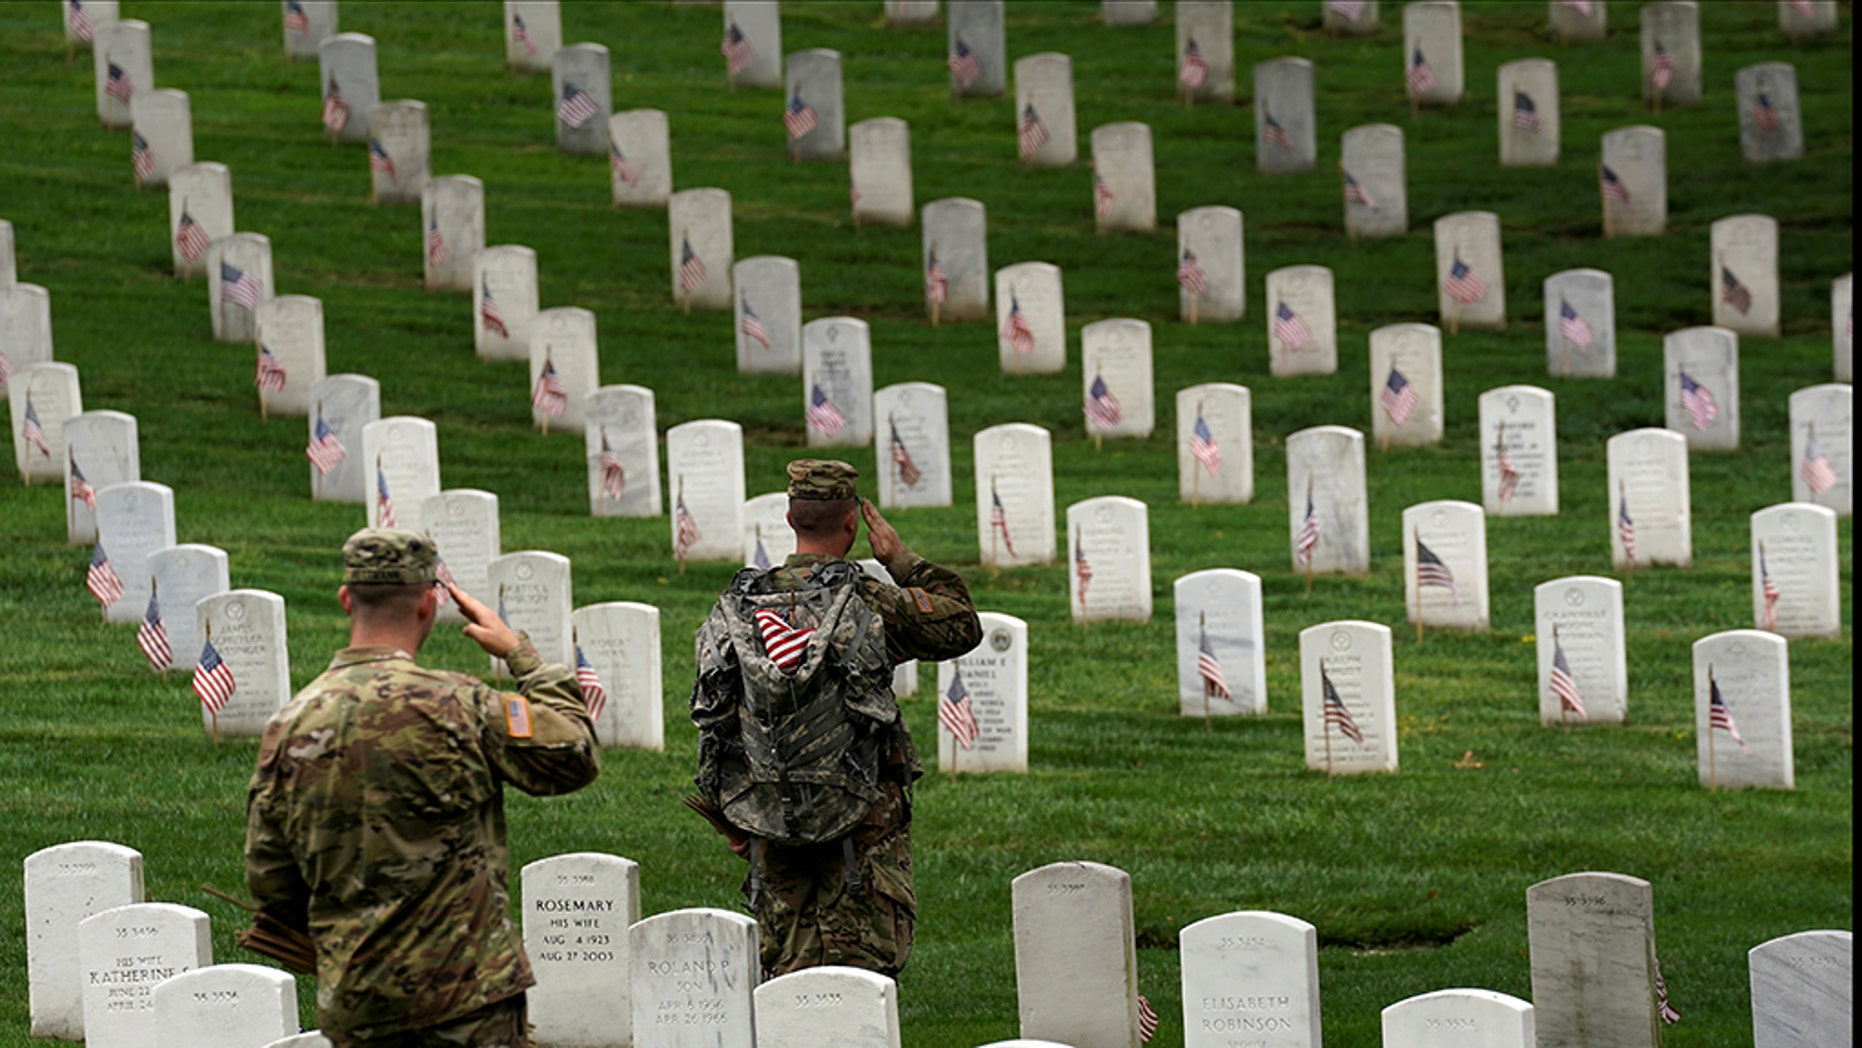 Arlington National Cemetery was established during the Civil War in 1864.